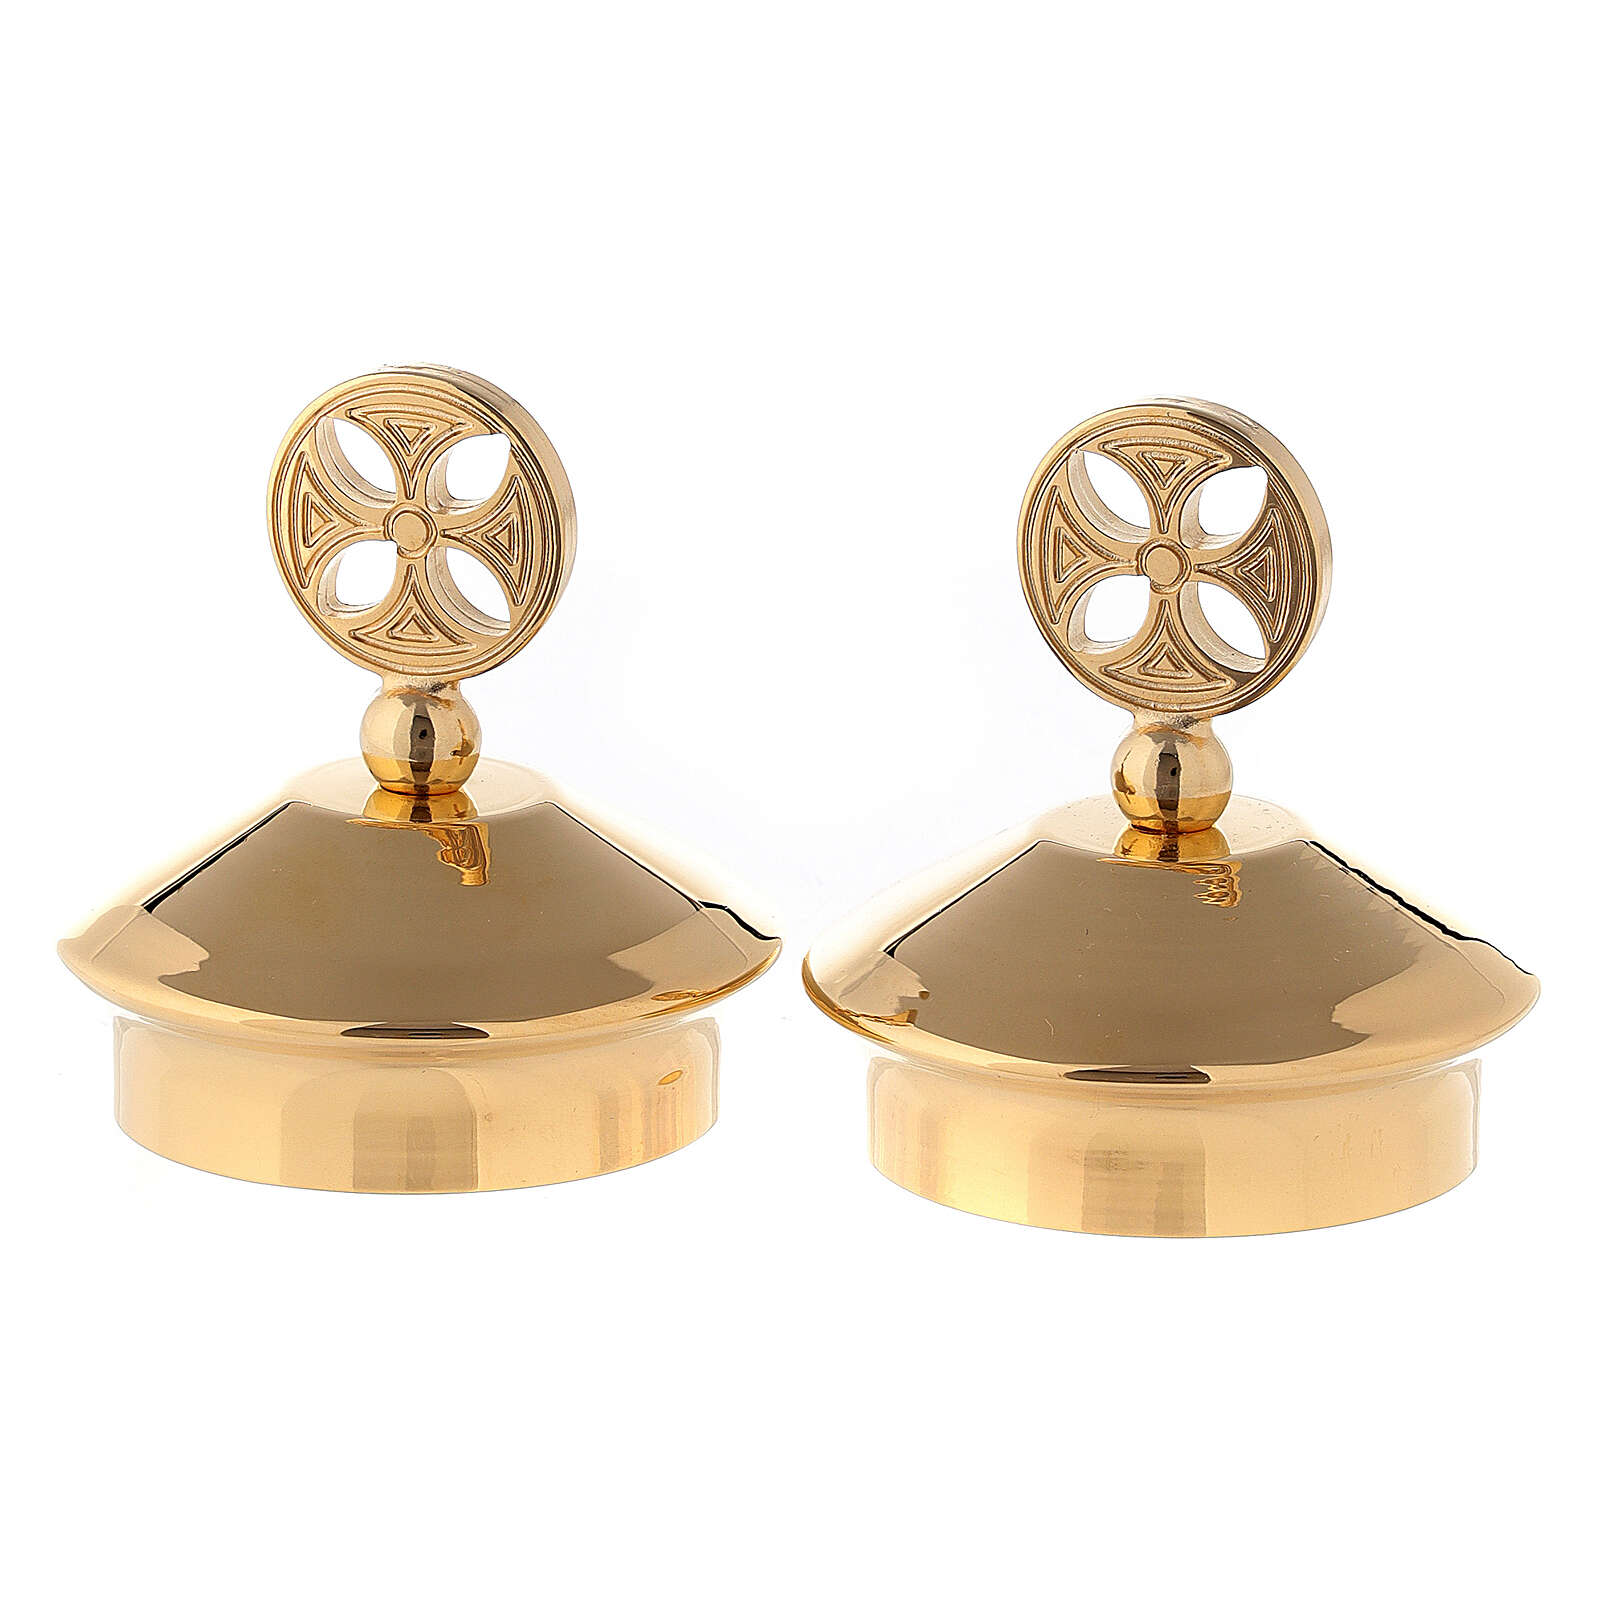 Set of lids for Fiesole-Como cruets gold plated brass 4